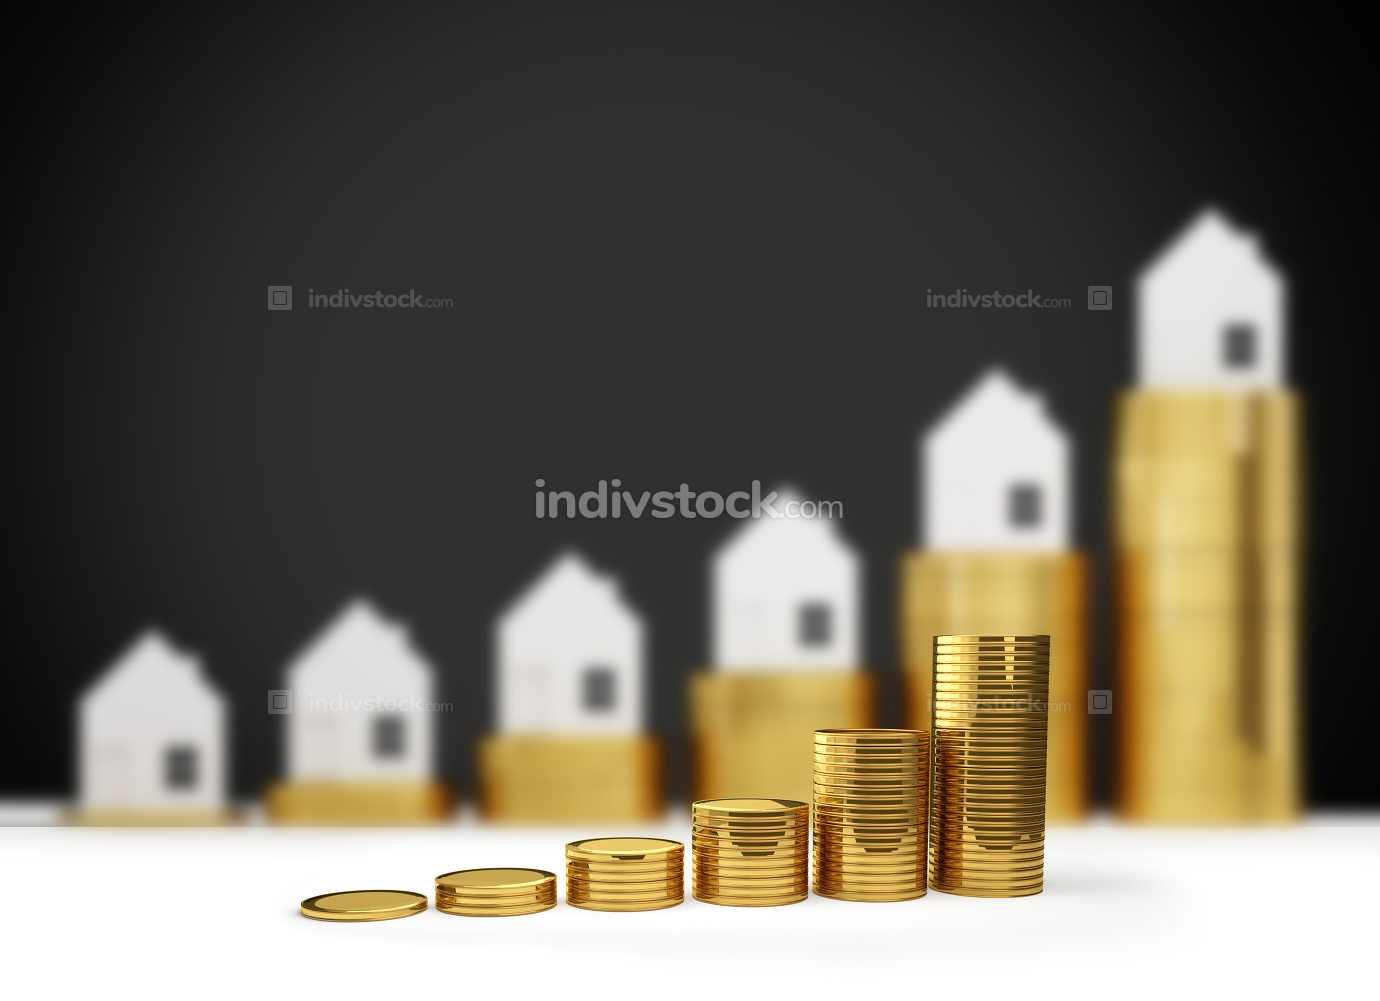 free download: rising house prices 3D illustration